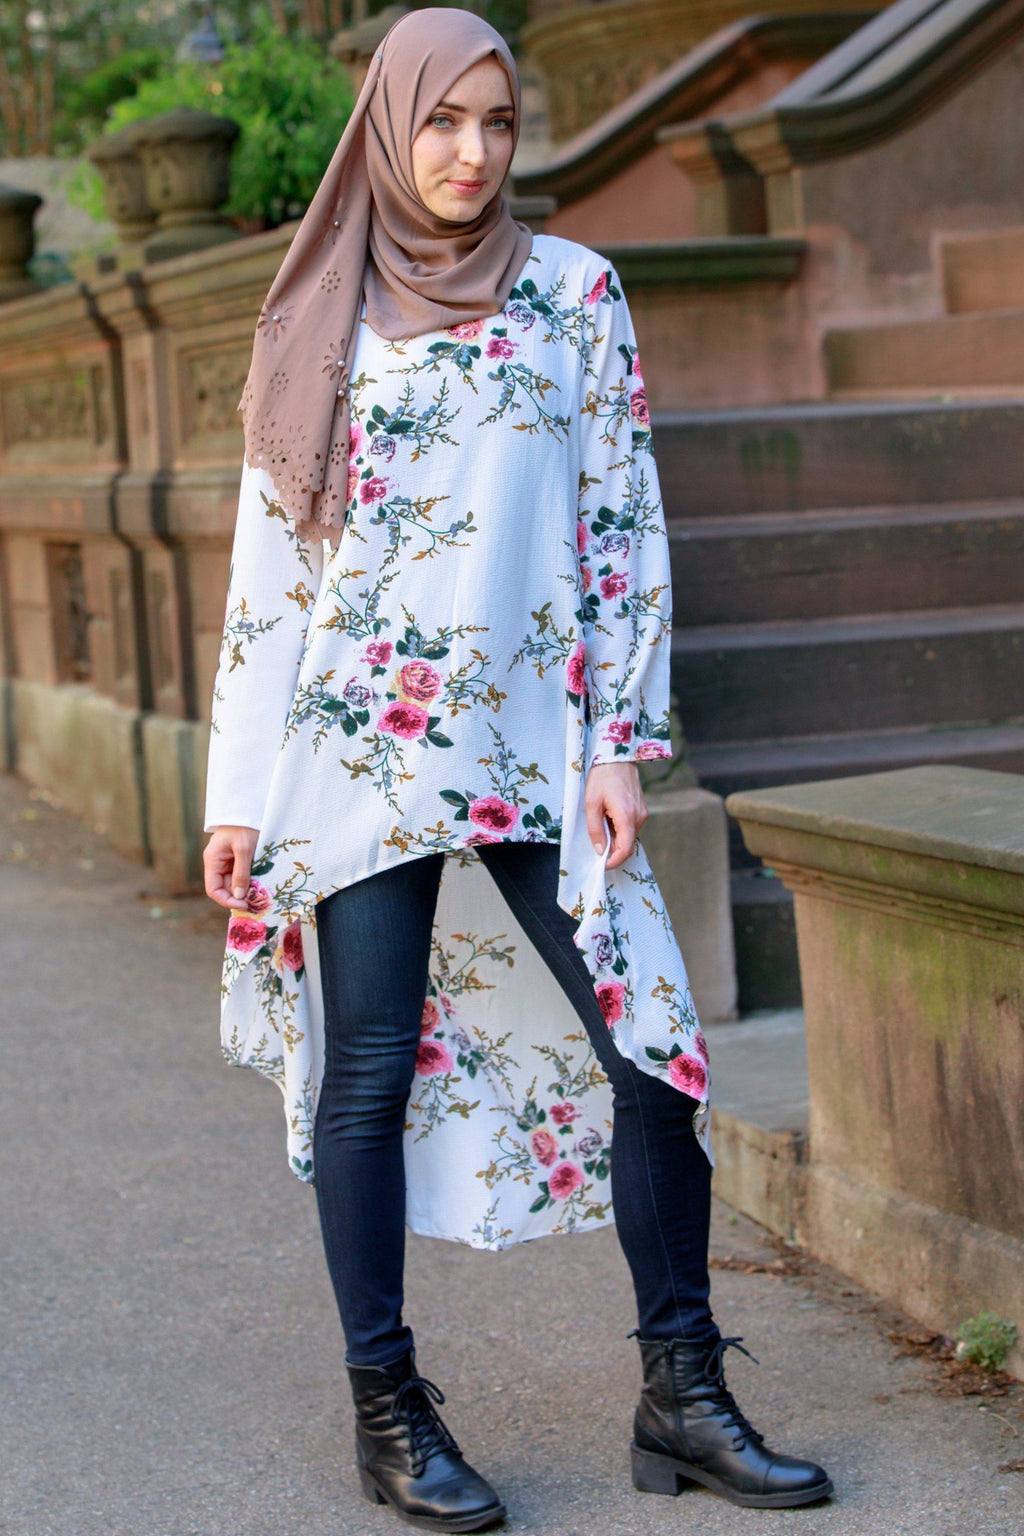 Cream Hi-Lo Floral Tunic Top - Abaya, Hijabs, Jilbabs, on sale now at UrbanModesty.com